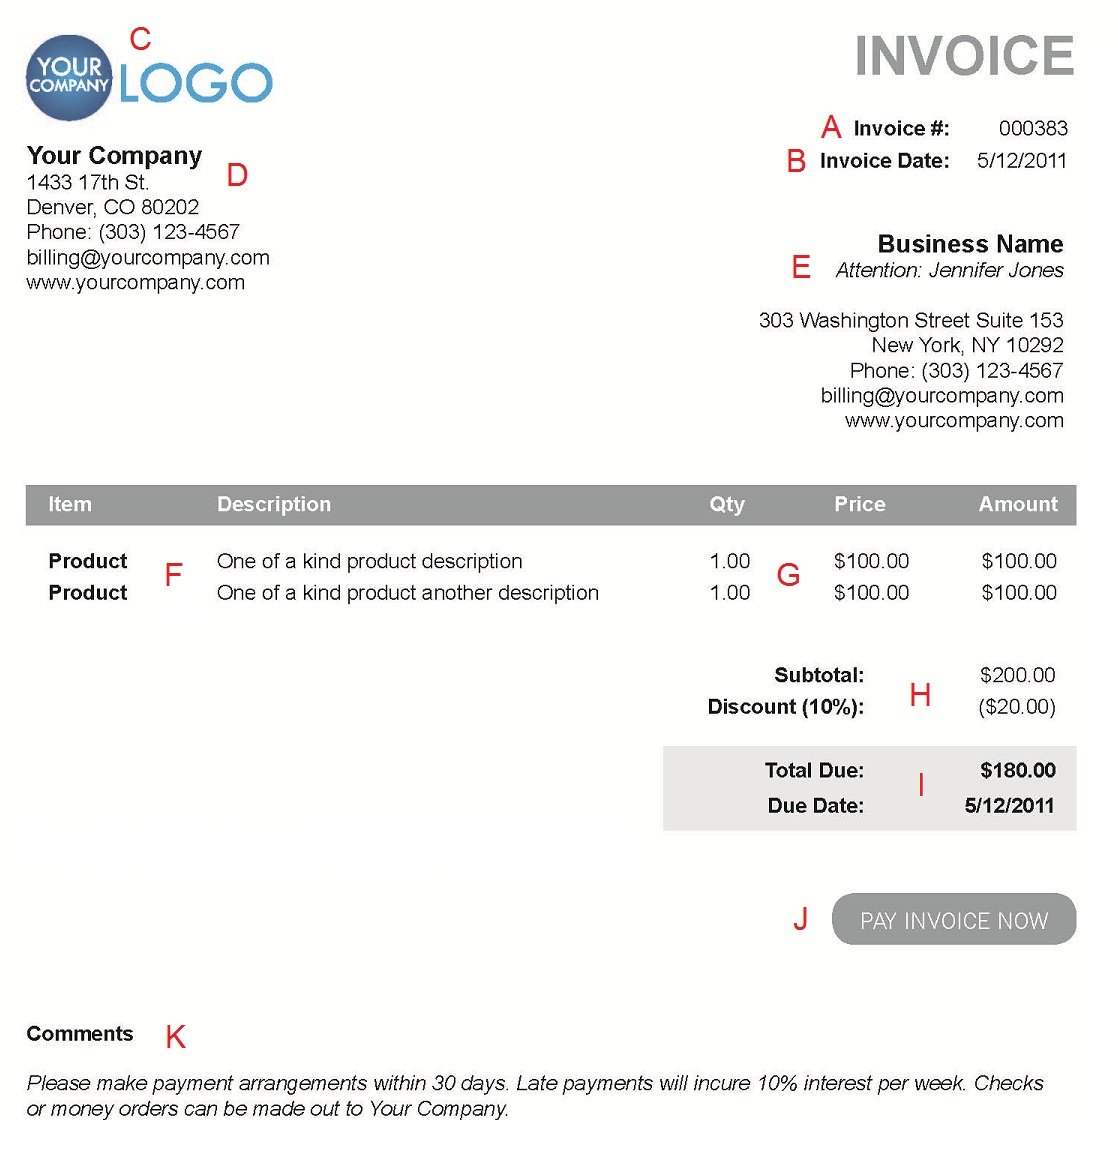 Indianaparanormalus  Unique The  Different Sections Of An Electronic Payment Invoice With Foxy A  With Beautiful Scheduling And Invoicing Software Also Sample Invoice Google Docs In Addition Vintage Invoice And Normal Invoice Format As Well As Payment For The Invoice Additionally Overdue Invoice Interest From Paysimplecom With Indianaparanormalus  Foxy The  Different Sections Of An Electronic Payment Invoice With Beautiful A  And Unique Scheduling And Invoicing Software Also Sample Invoice Google Docs In Addition Vintage Invoice From Paysimplecom